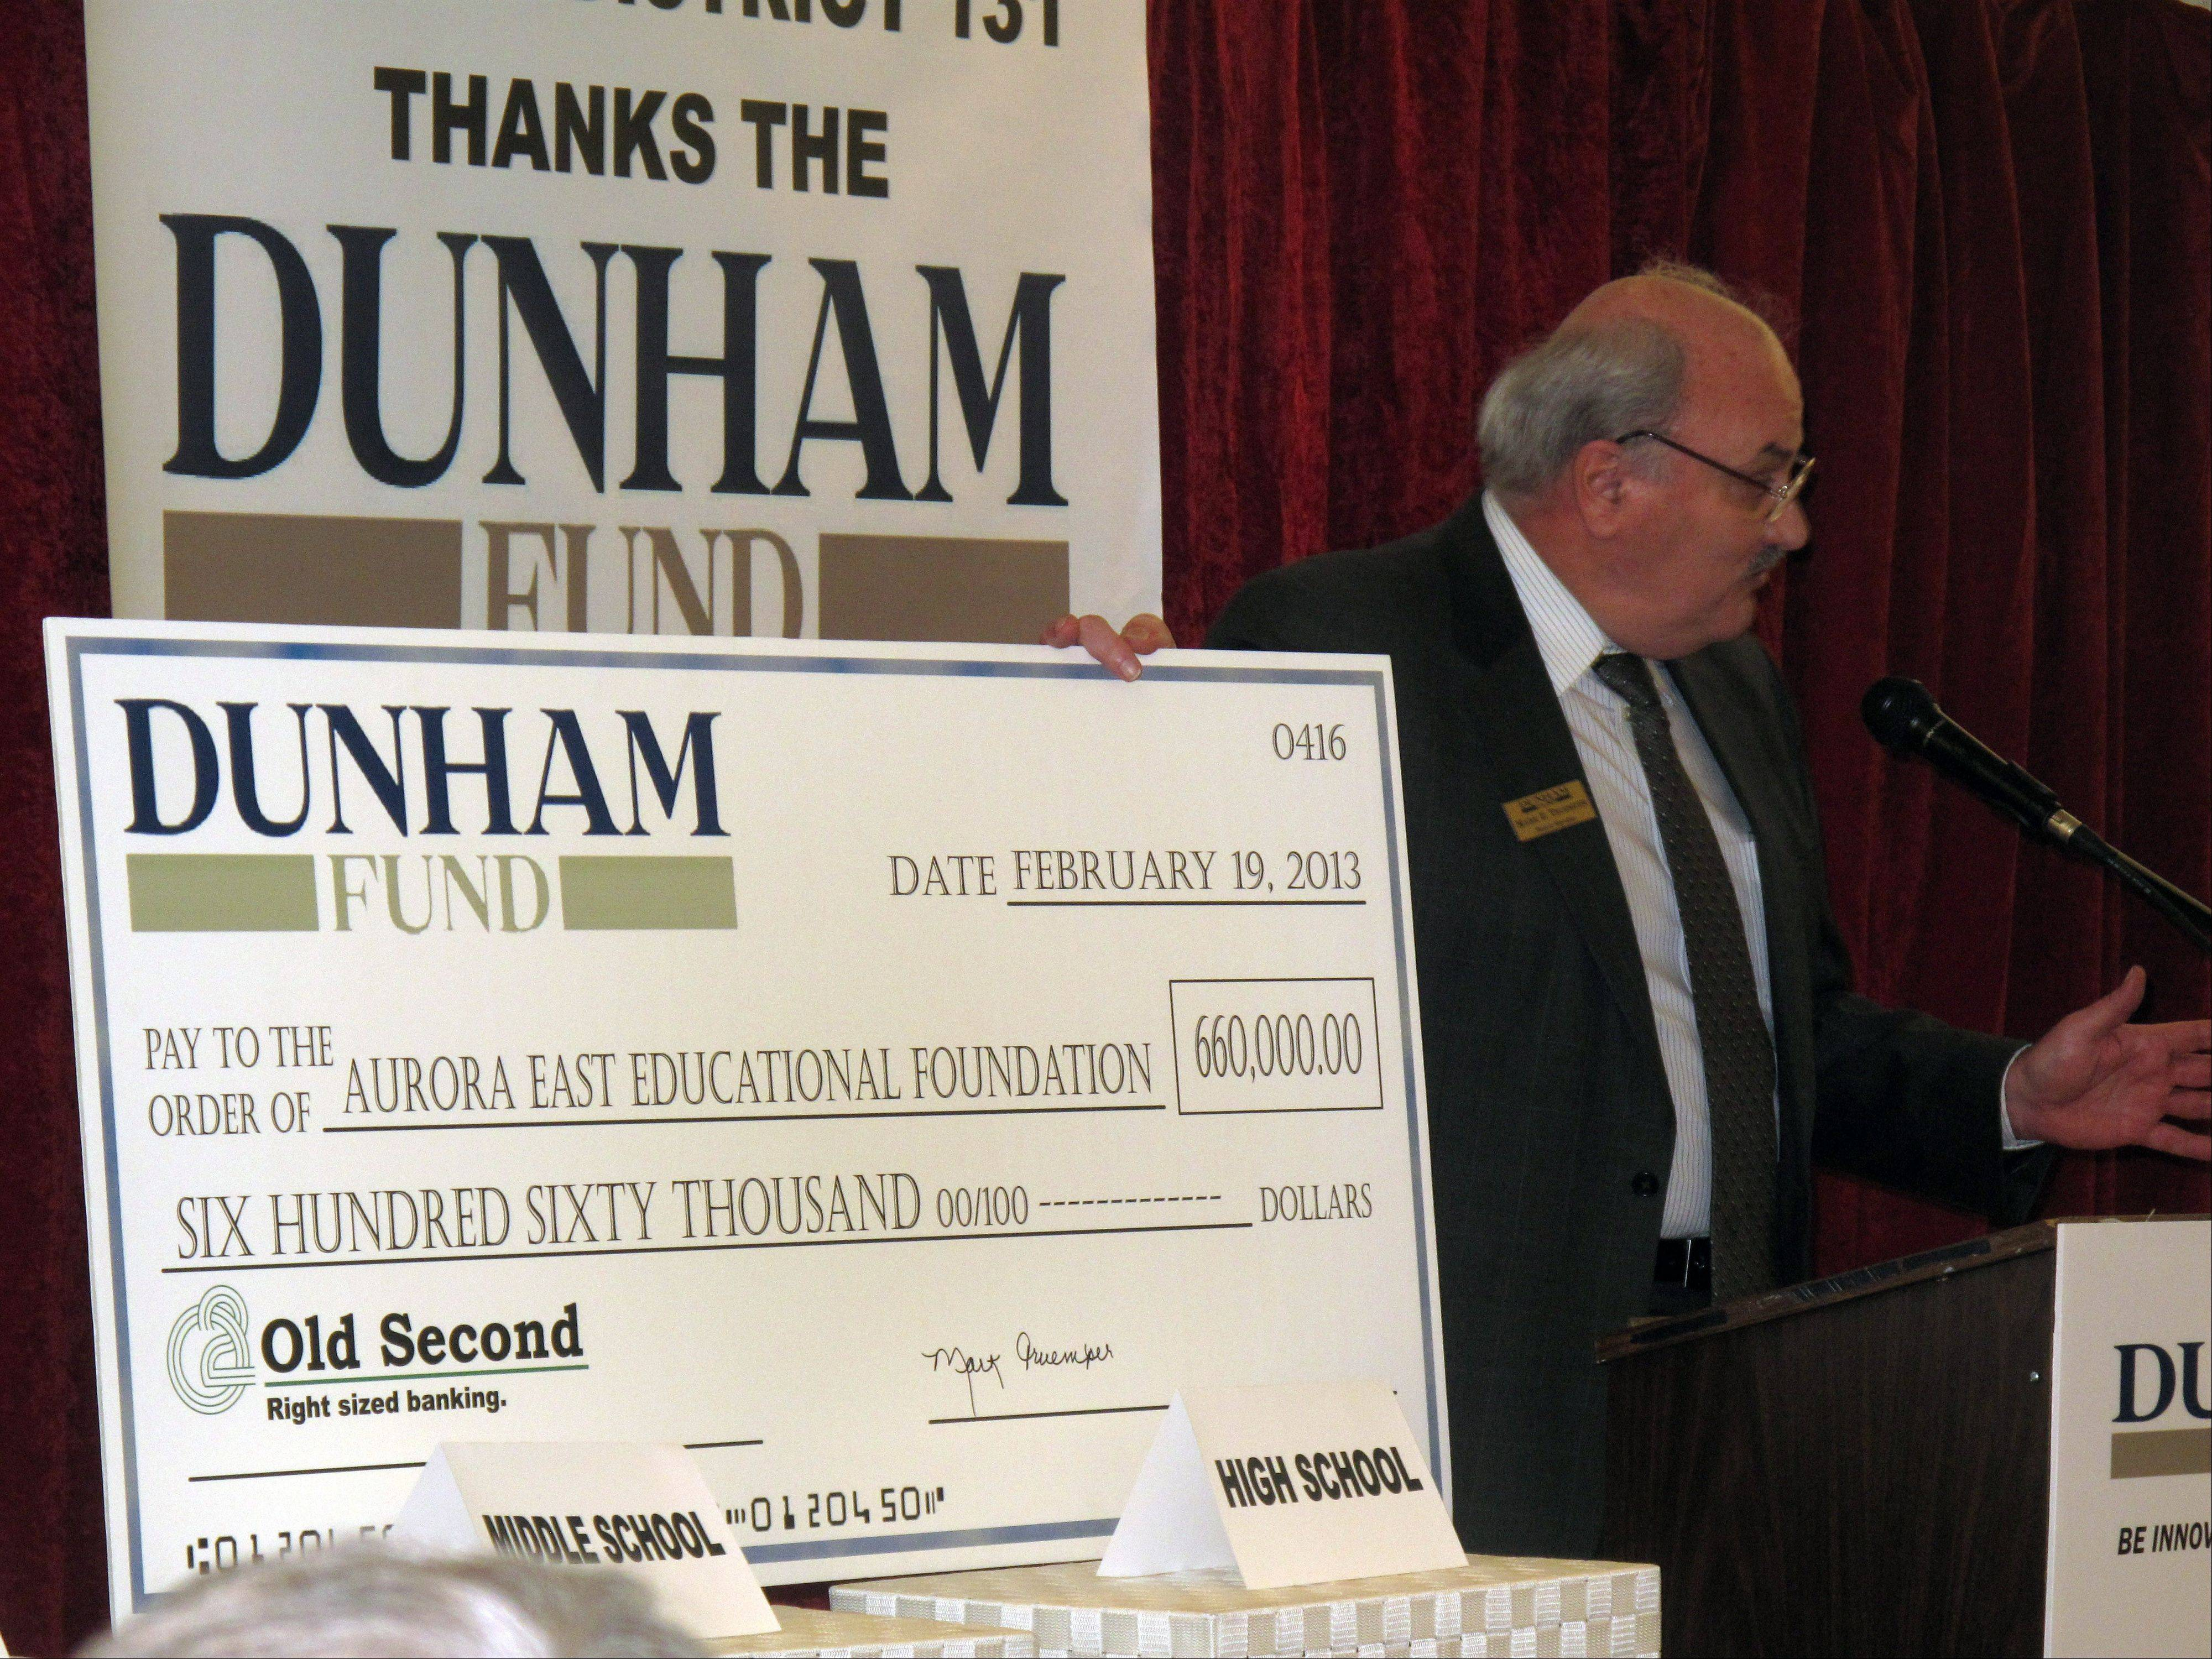 Mark Truemper, a member of the Dunham Fund's board of directors, gives a $660,000 grant Tuesday to East Aurora District 131 so each of 750 students at the district's Fred Rodgers Magnet Academy can receive a personal laptop next year.